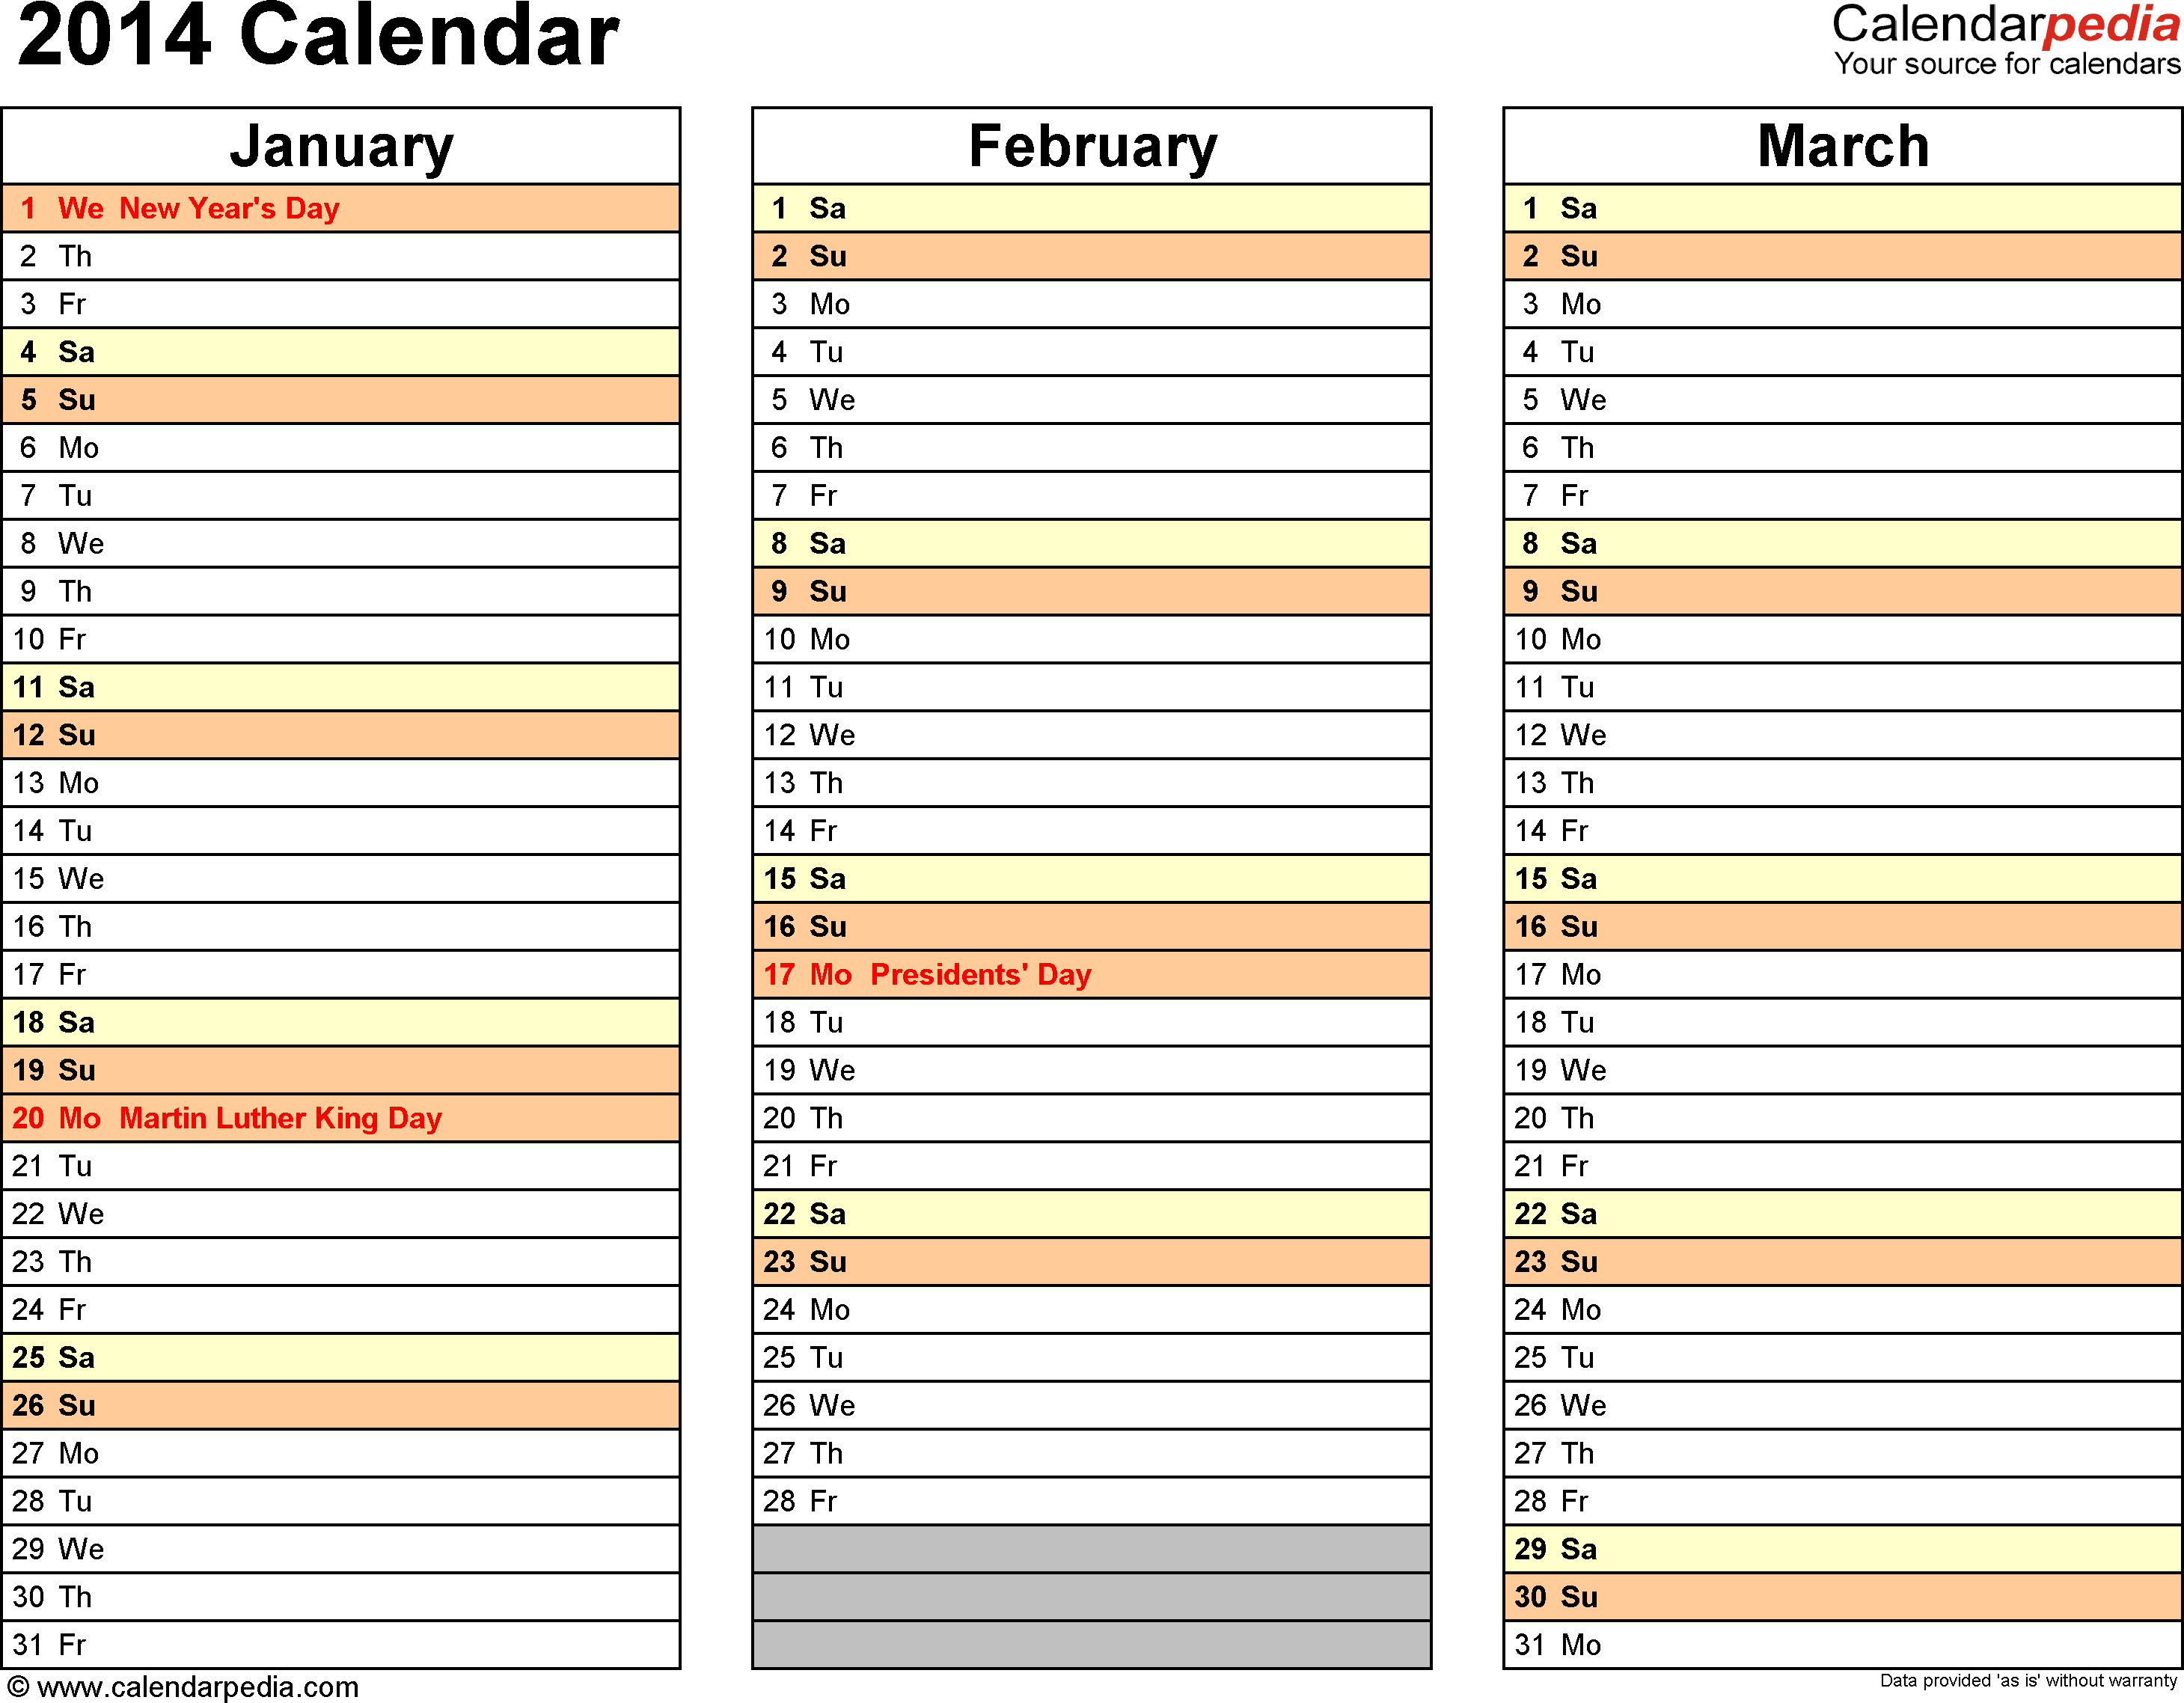 Download PDF template for 2014 calendar template 6: landscape orientation, 4 pages, months horizontally, days vertically, with US federal holidays 2014, paper format: US letter